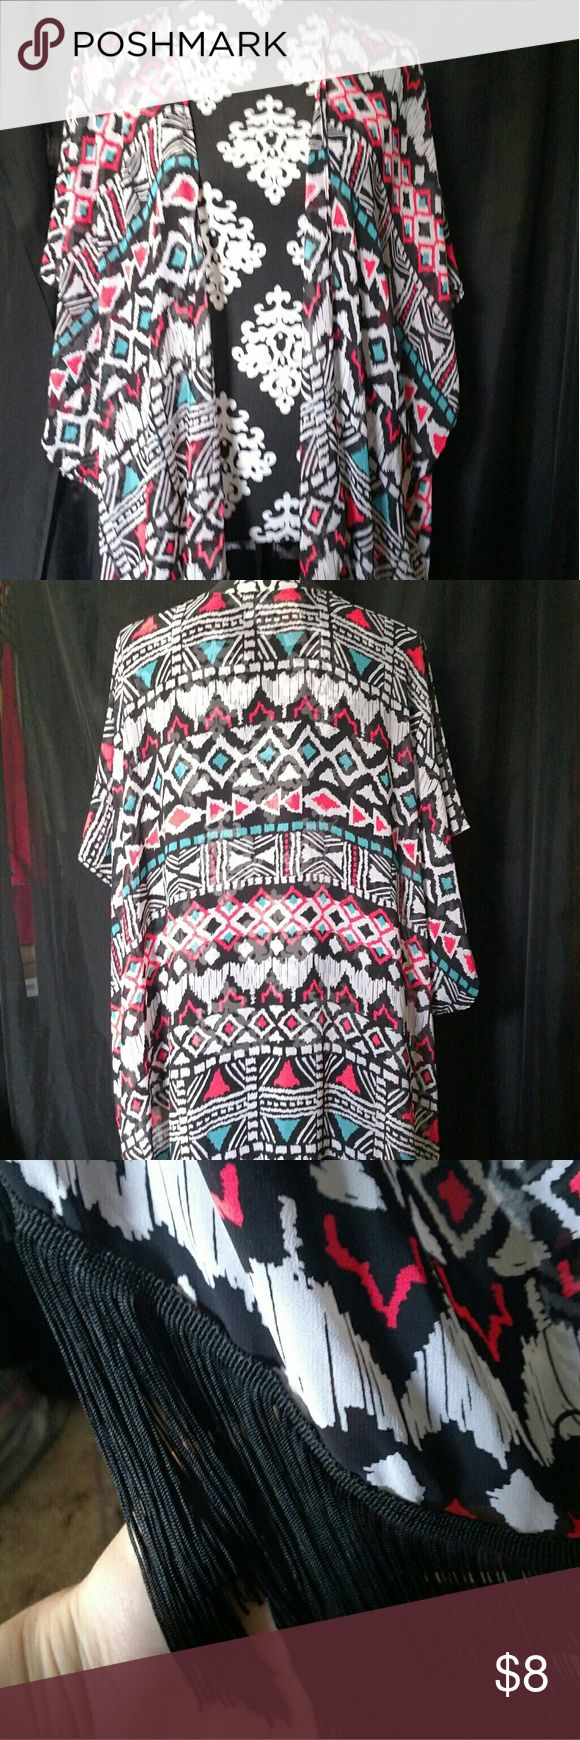 NWT OP Kimono Swimsuit Cover Up Never worn, still has tag. Colorful tribal print with black fringe along bottom. Says swimsuit cover up, but can be worn as kimono as well. OP Swim Coverups